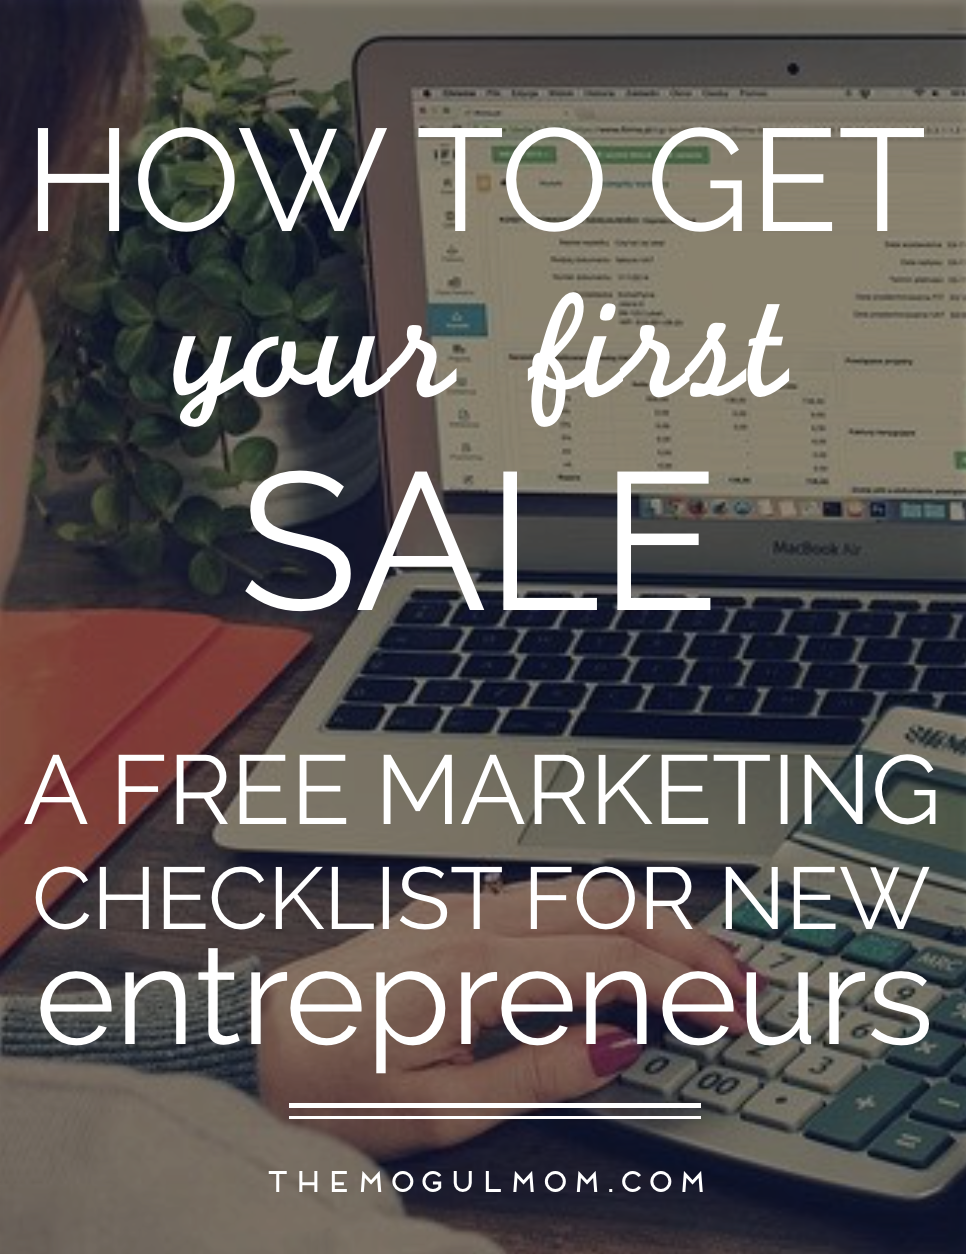 How to Get Your First Sale In 30 Days: A Free Marketing Checklist For New Entrepreneurs